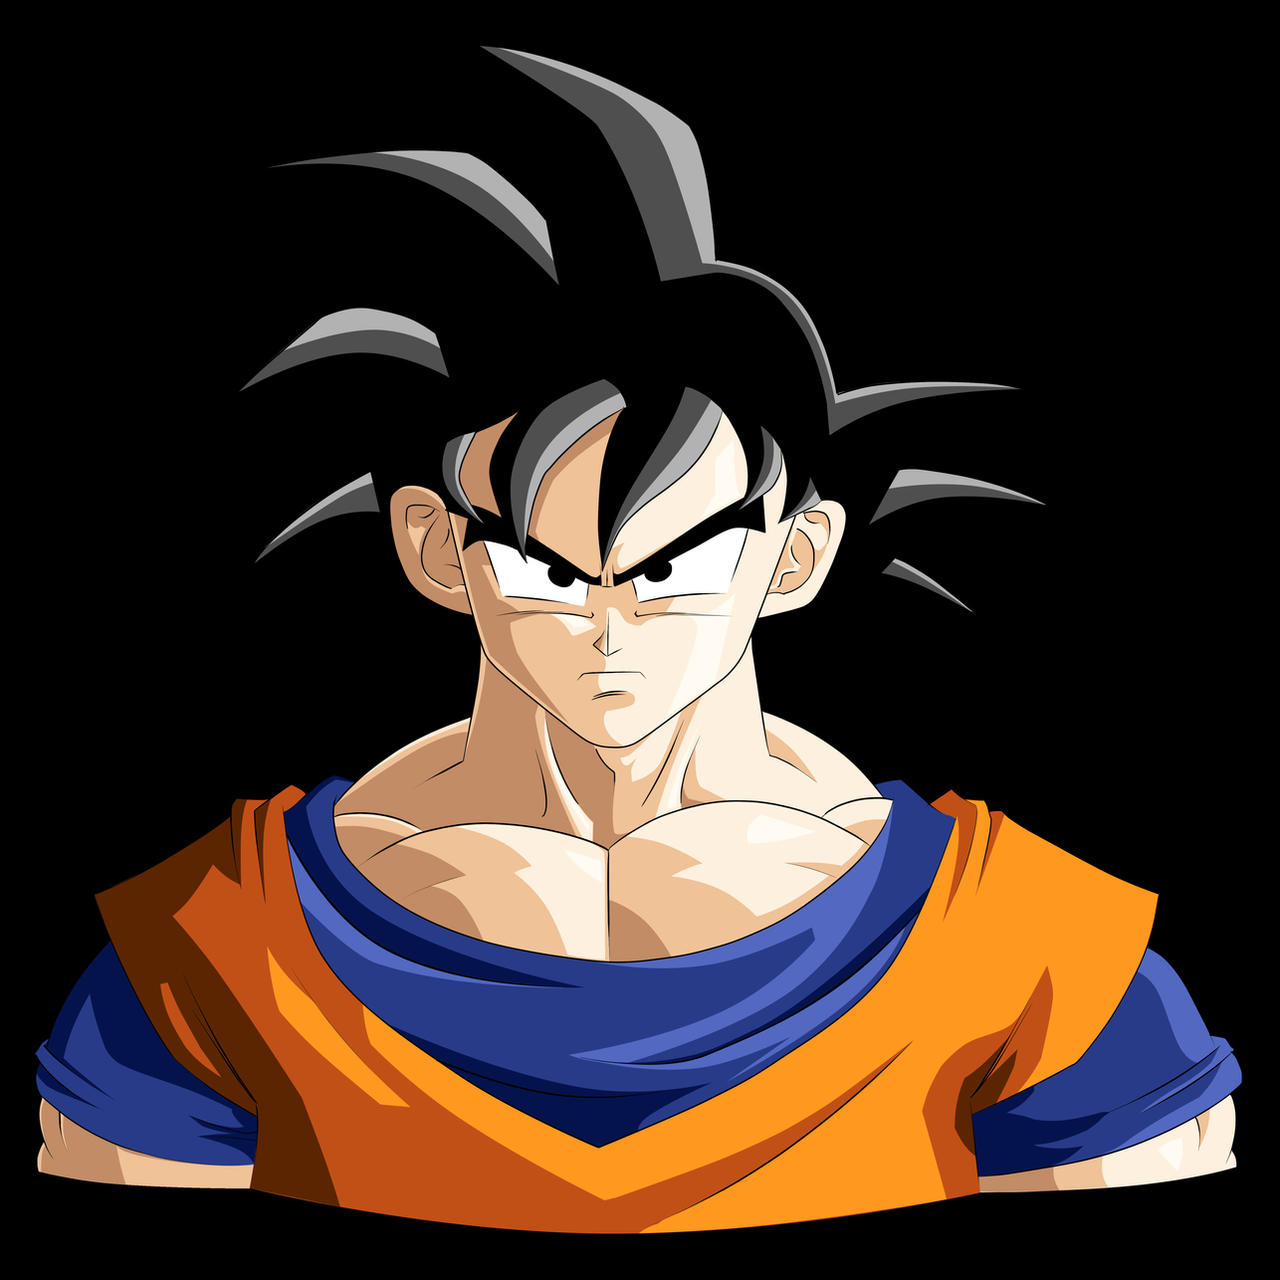 goku normal form by b36one on deviantart